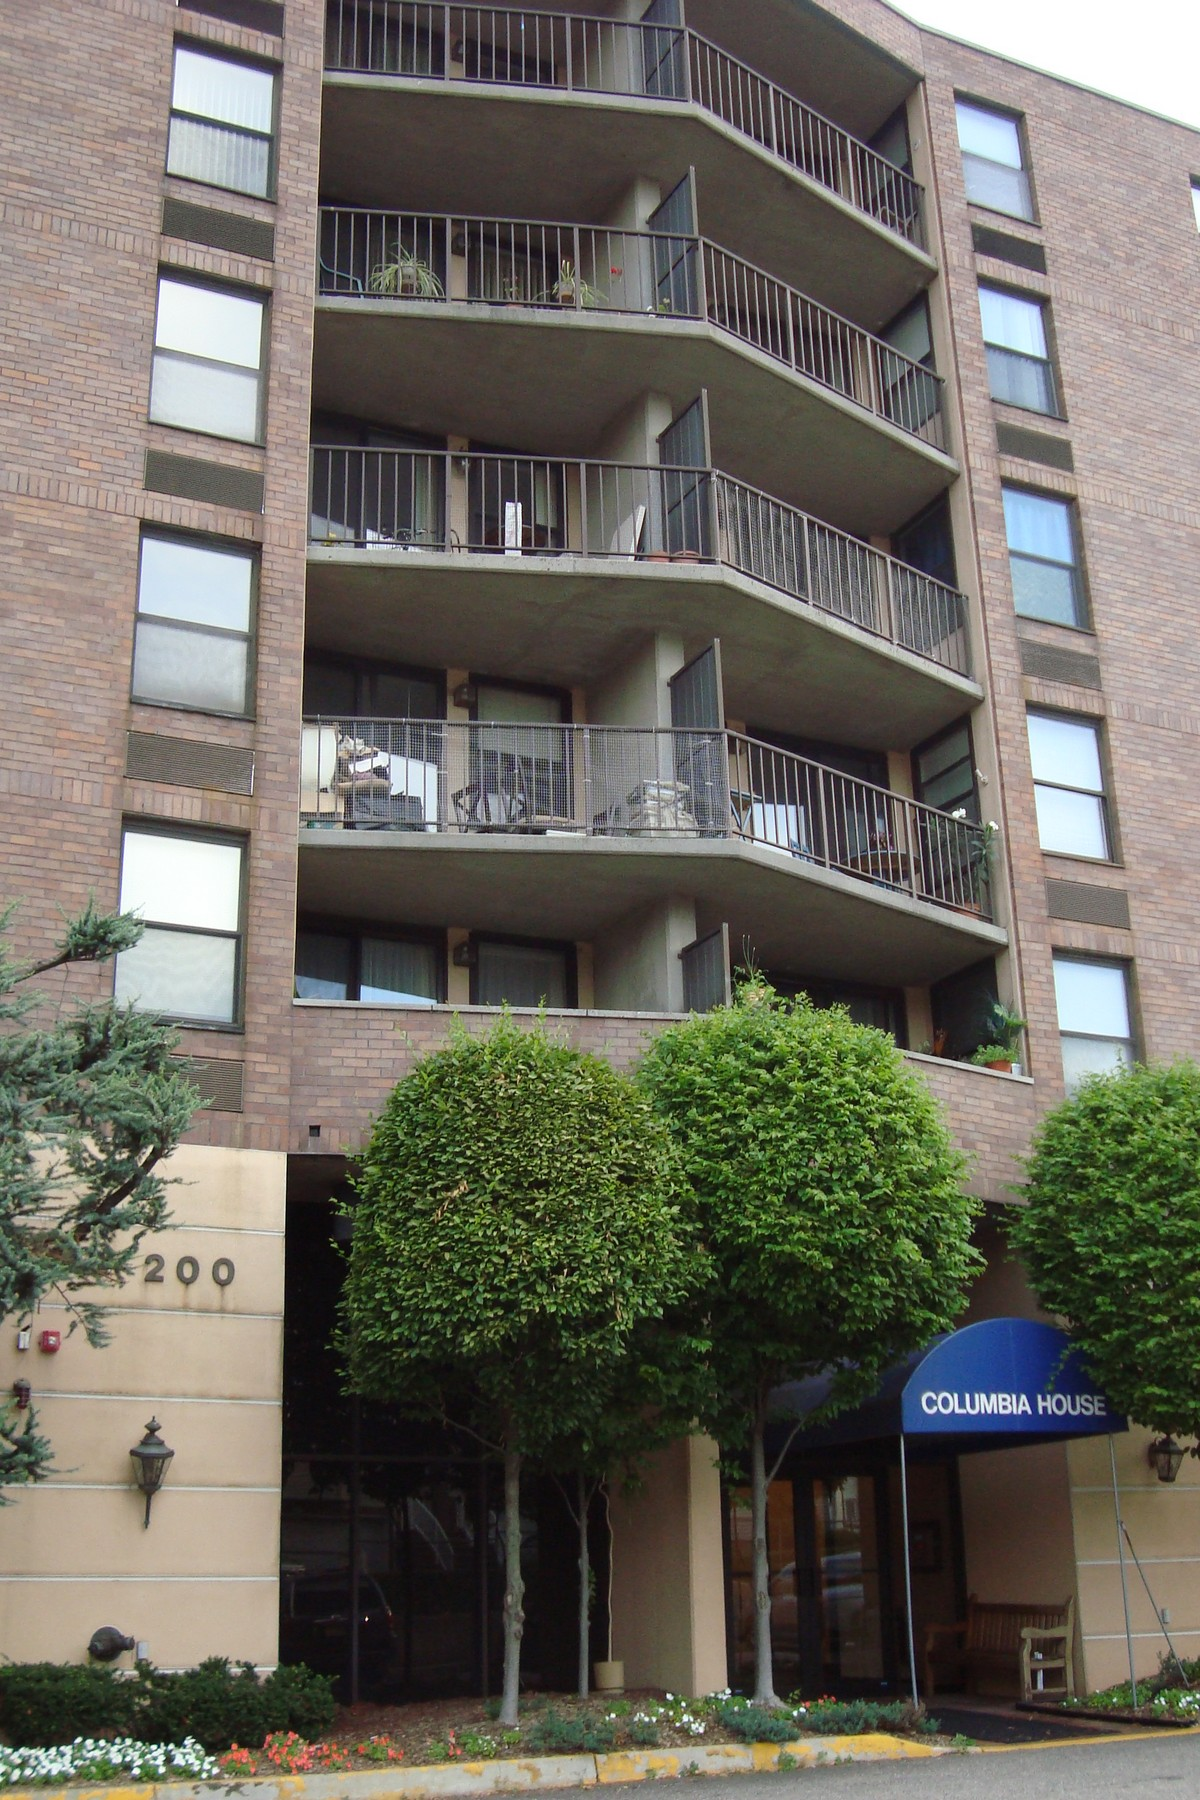 콘도미니엄 용 매매 에 Spacious two bedroom apartment with balcony 200 Division Street #6-A Columbia House Cliffside Park, 뉴저지 07010 미국